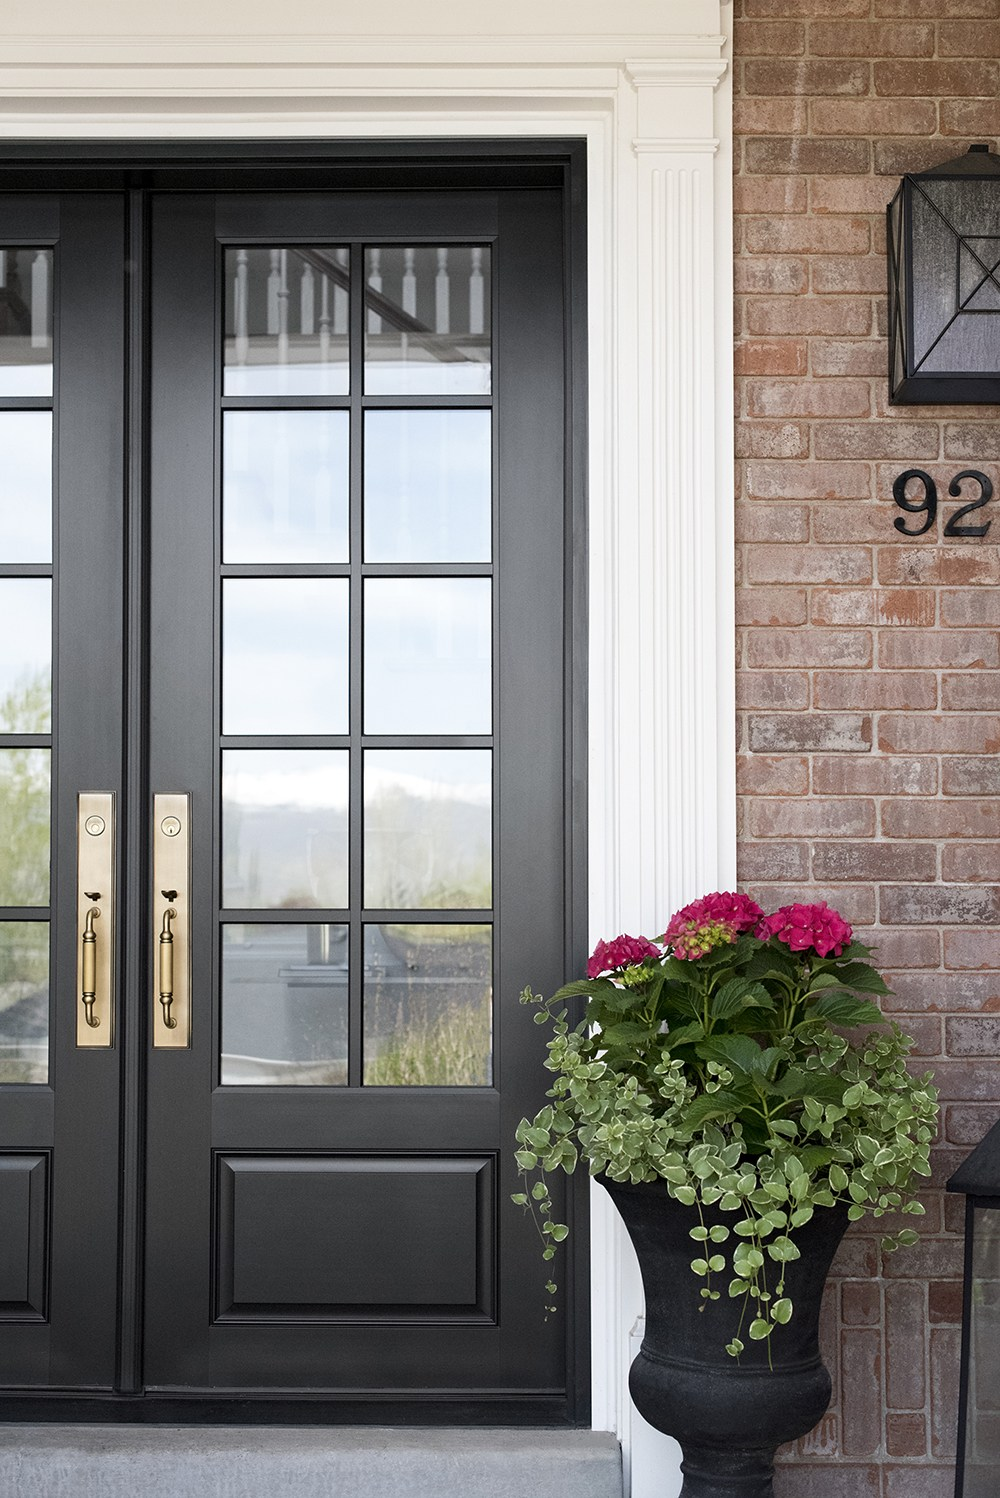 Should the Interior of Your Home Match the Exterior? - roomfortuesday.com